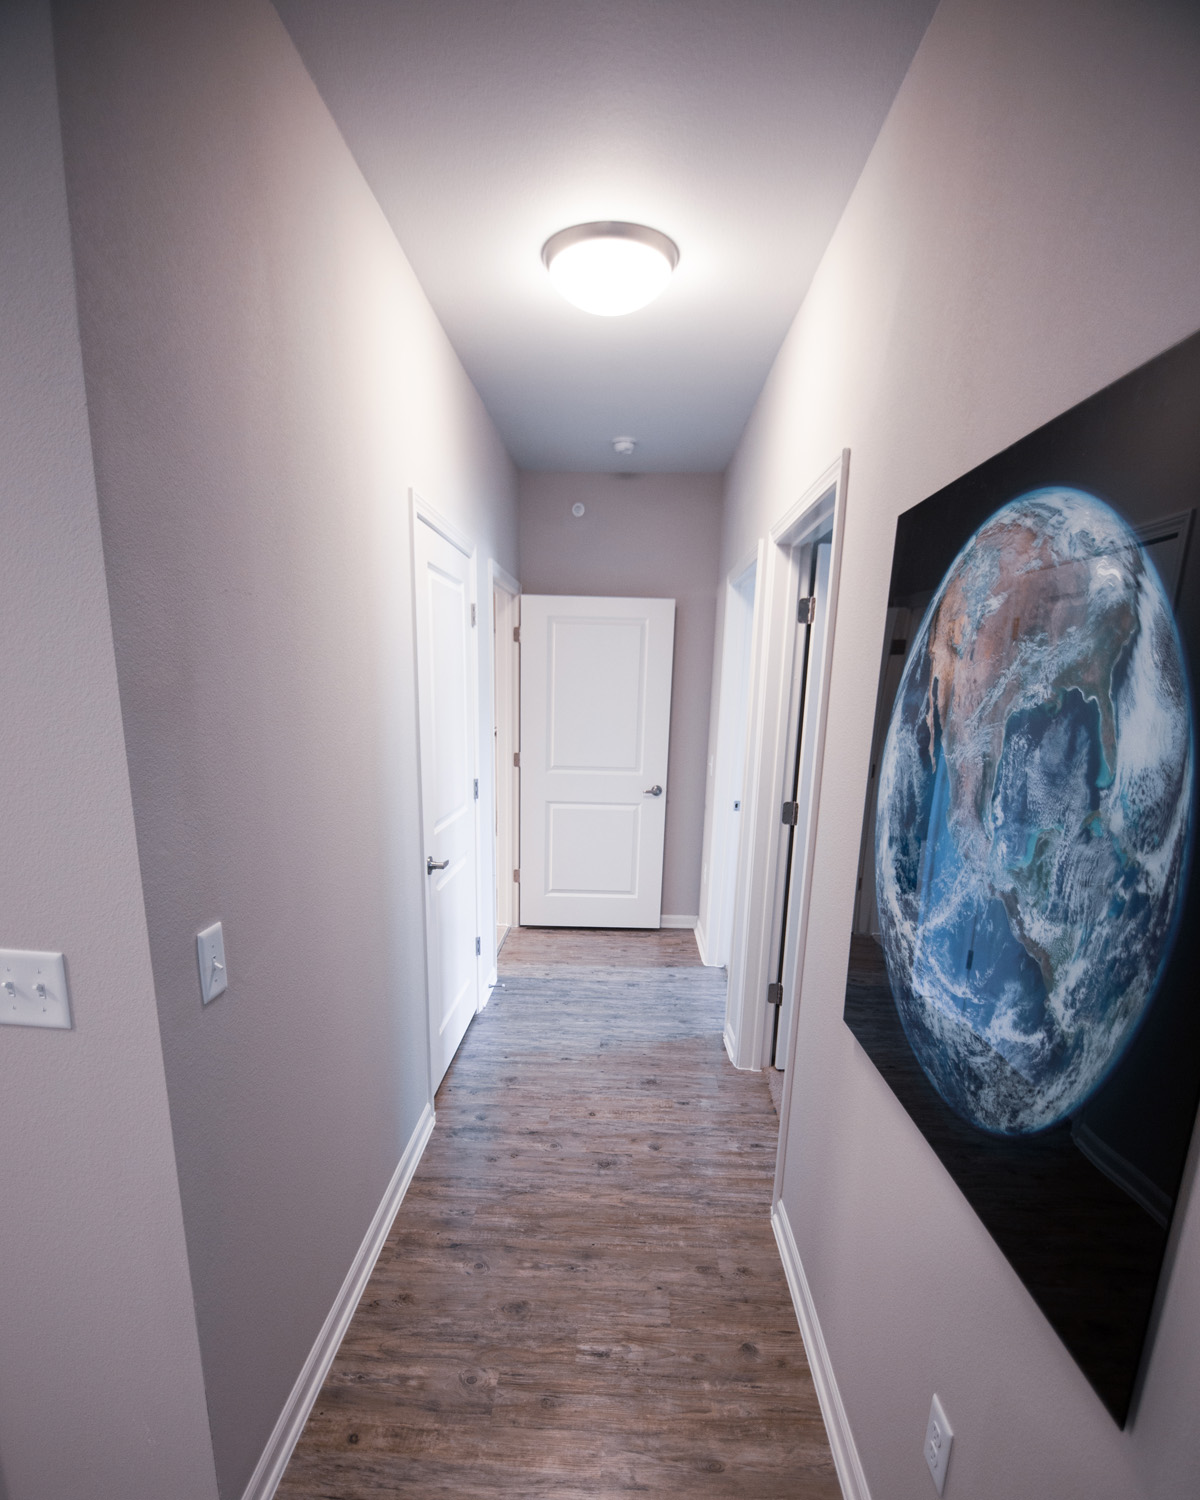 Goodnight Commons apartment hallway with hardwood flooring and grey walls